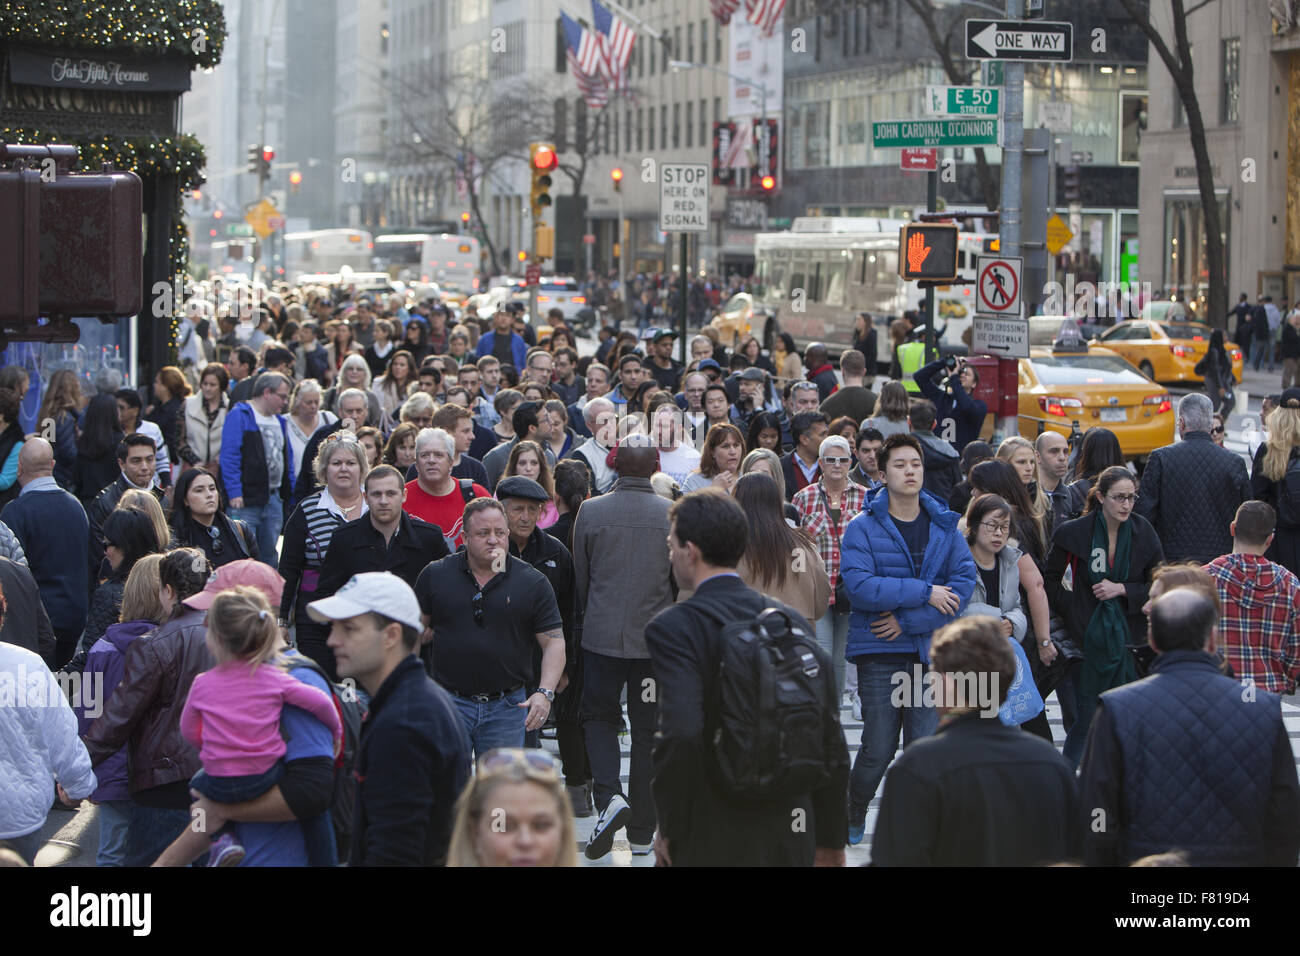 On Black Friday the busiest shopping day the street crowds are enormous on 5th Avenue near Rockefeller Center in - Stock Image